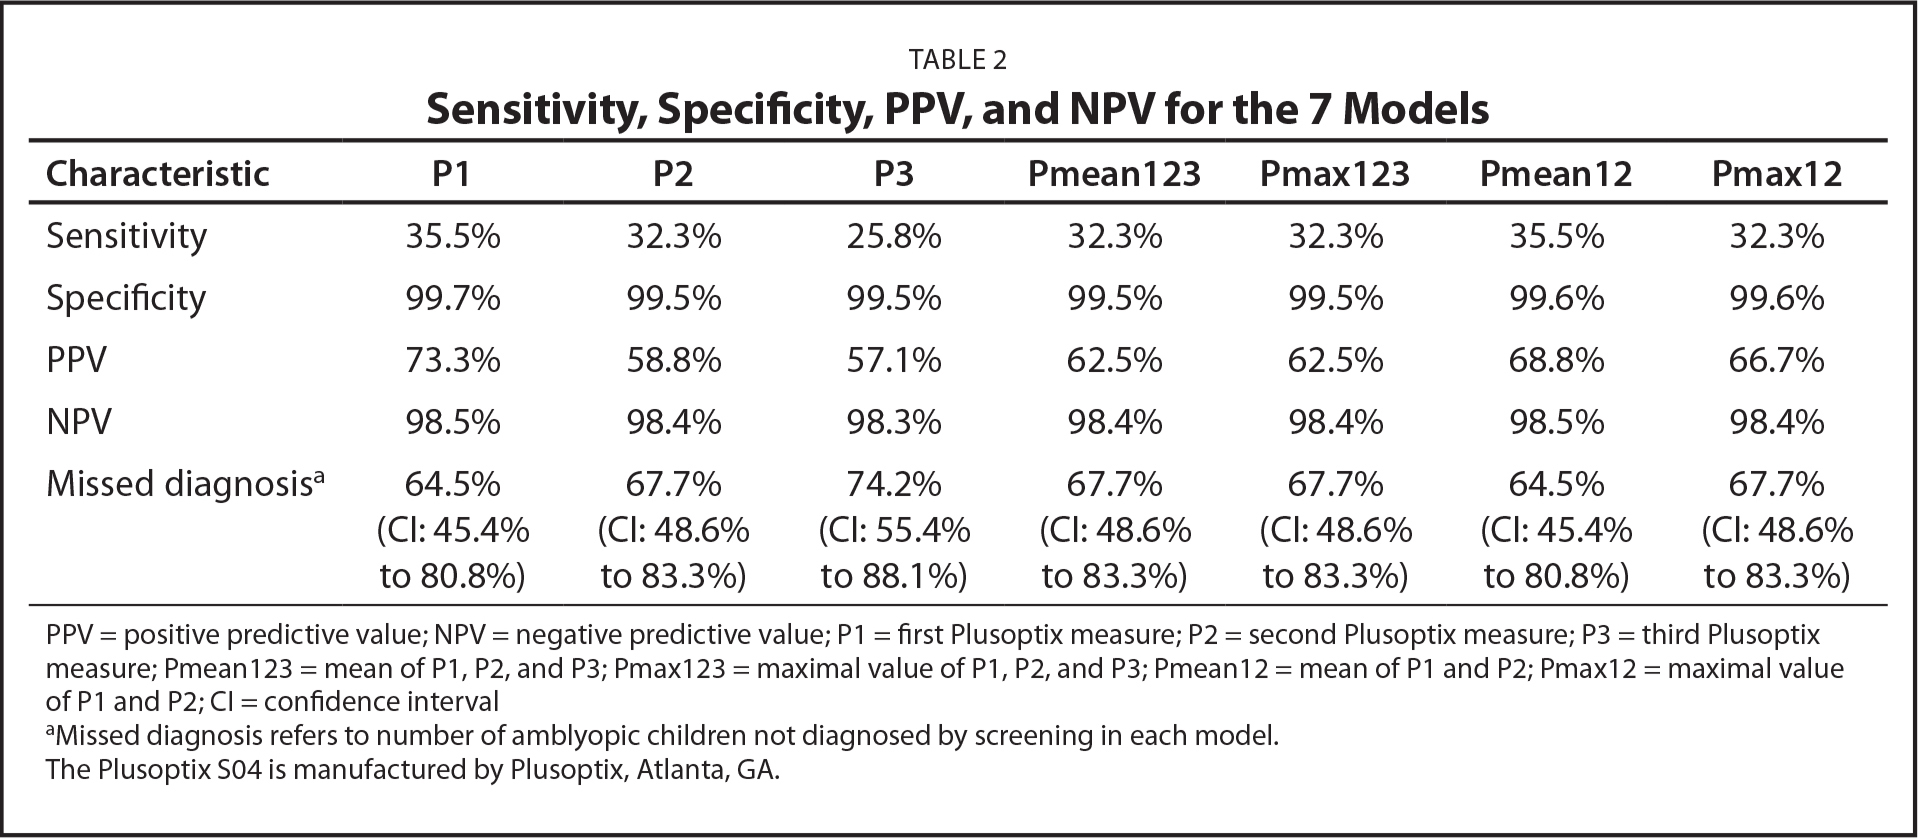 Sensitivity, Specificity, PPV, and NPV for the 7 Models